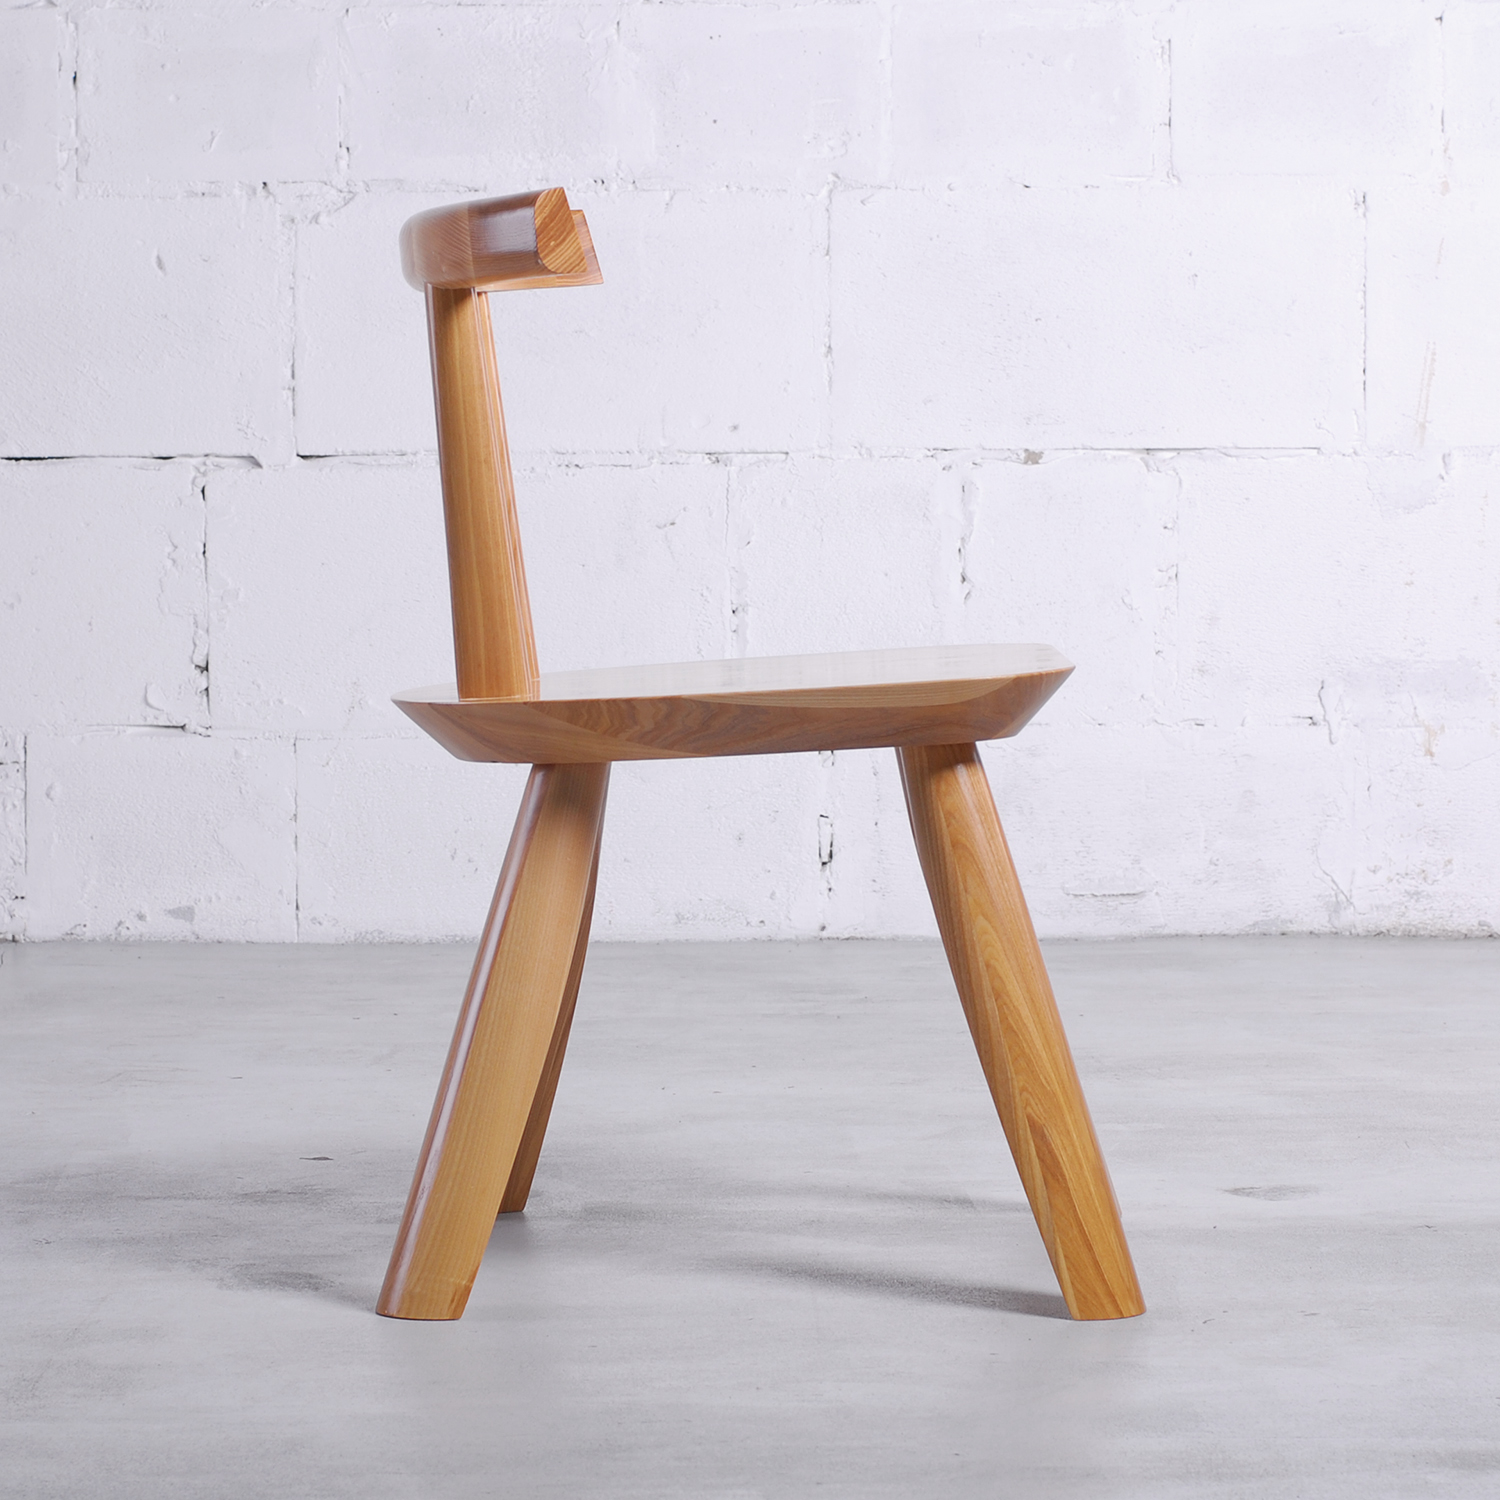 KLU 1 chair